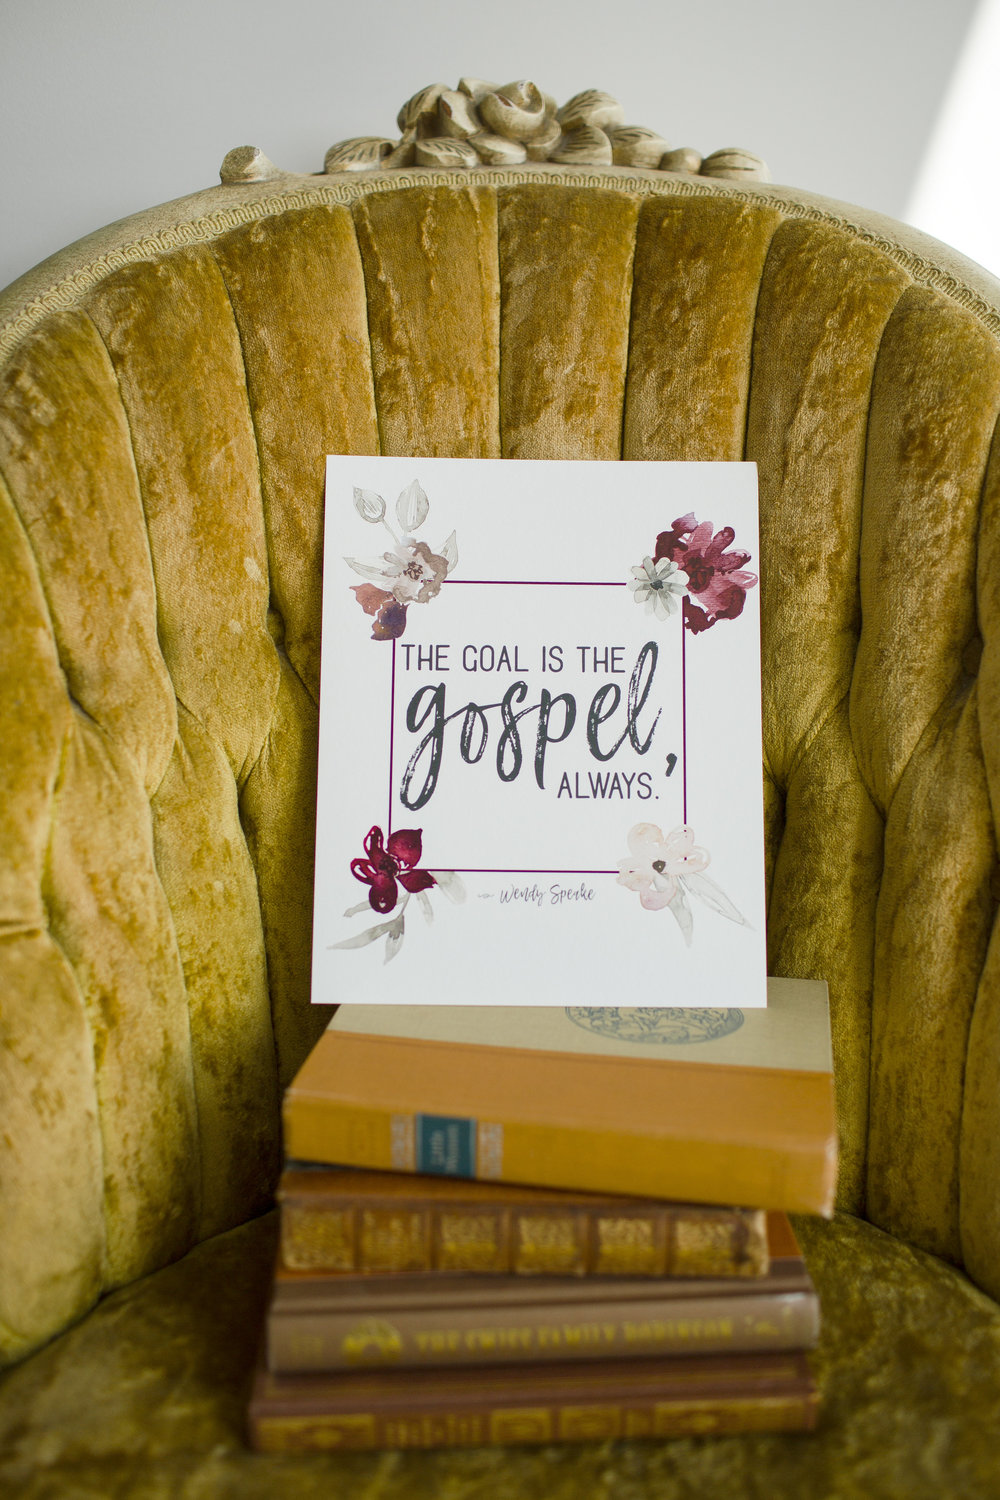 The Goal is the Gospel, Always — Free Prints from WendySpeake.com